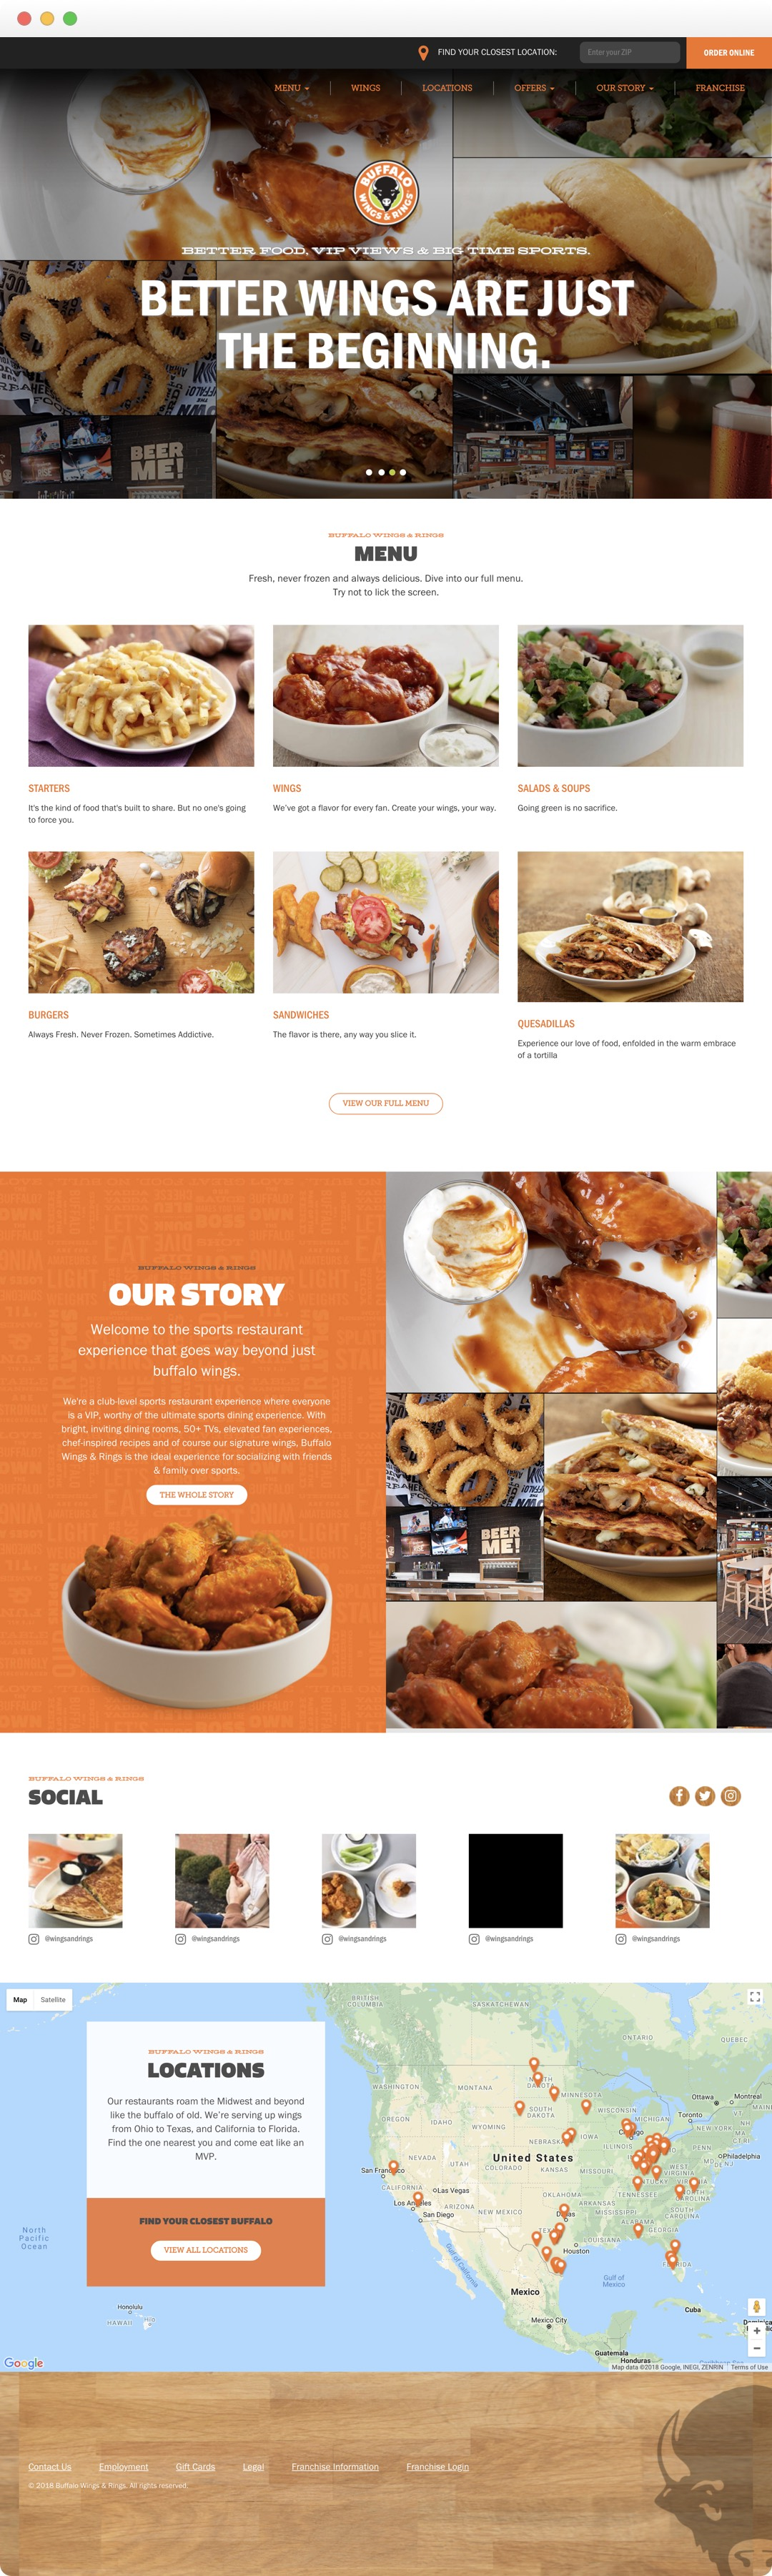 Buffalo Wings & Rings - Home page